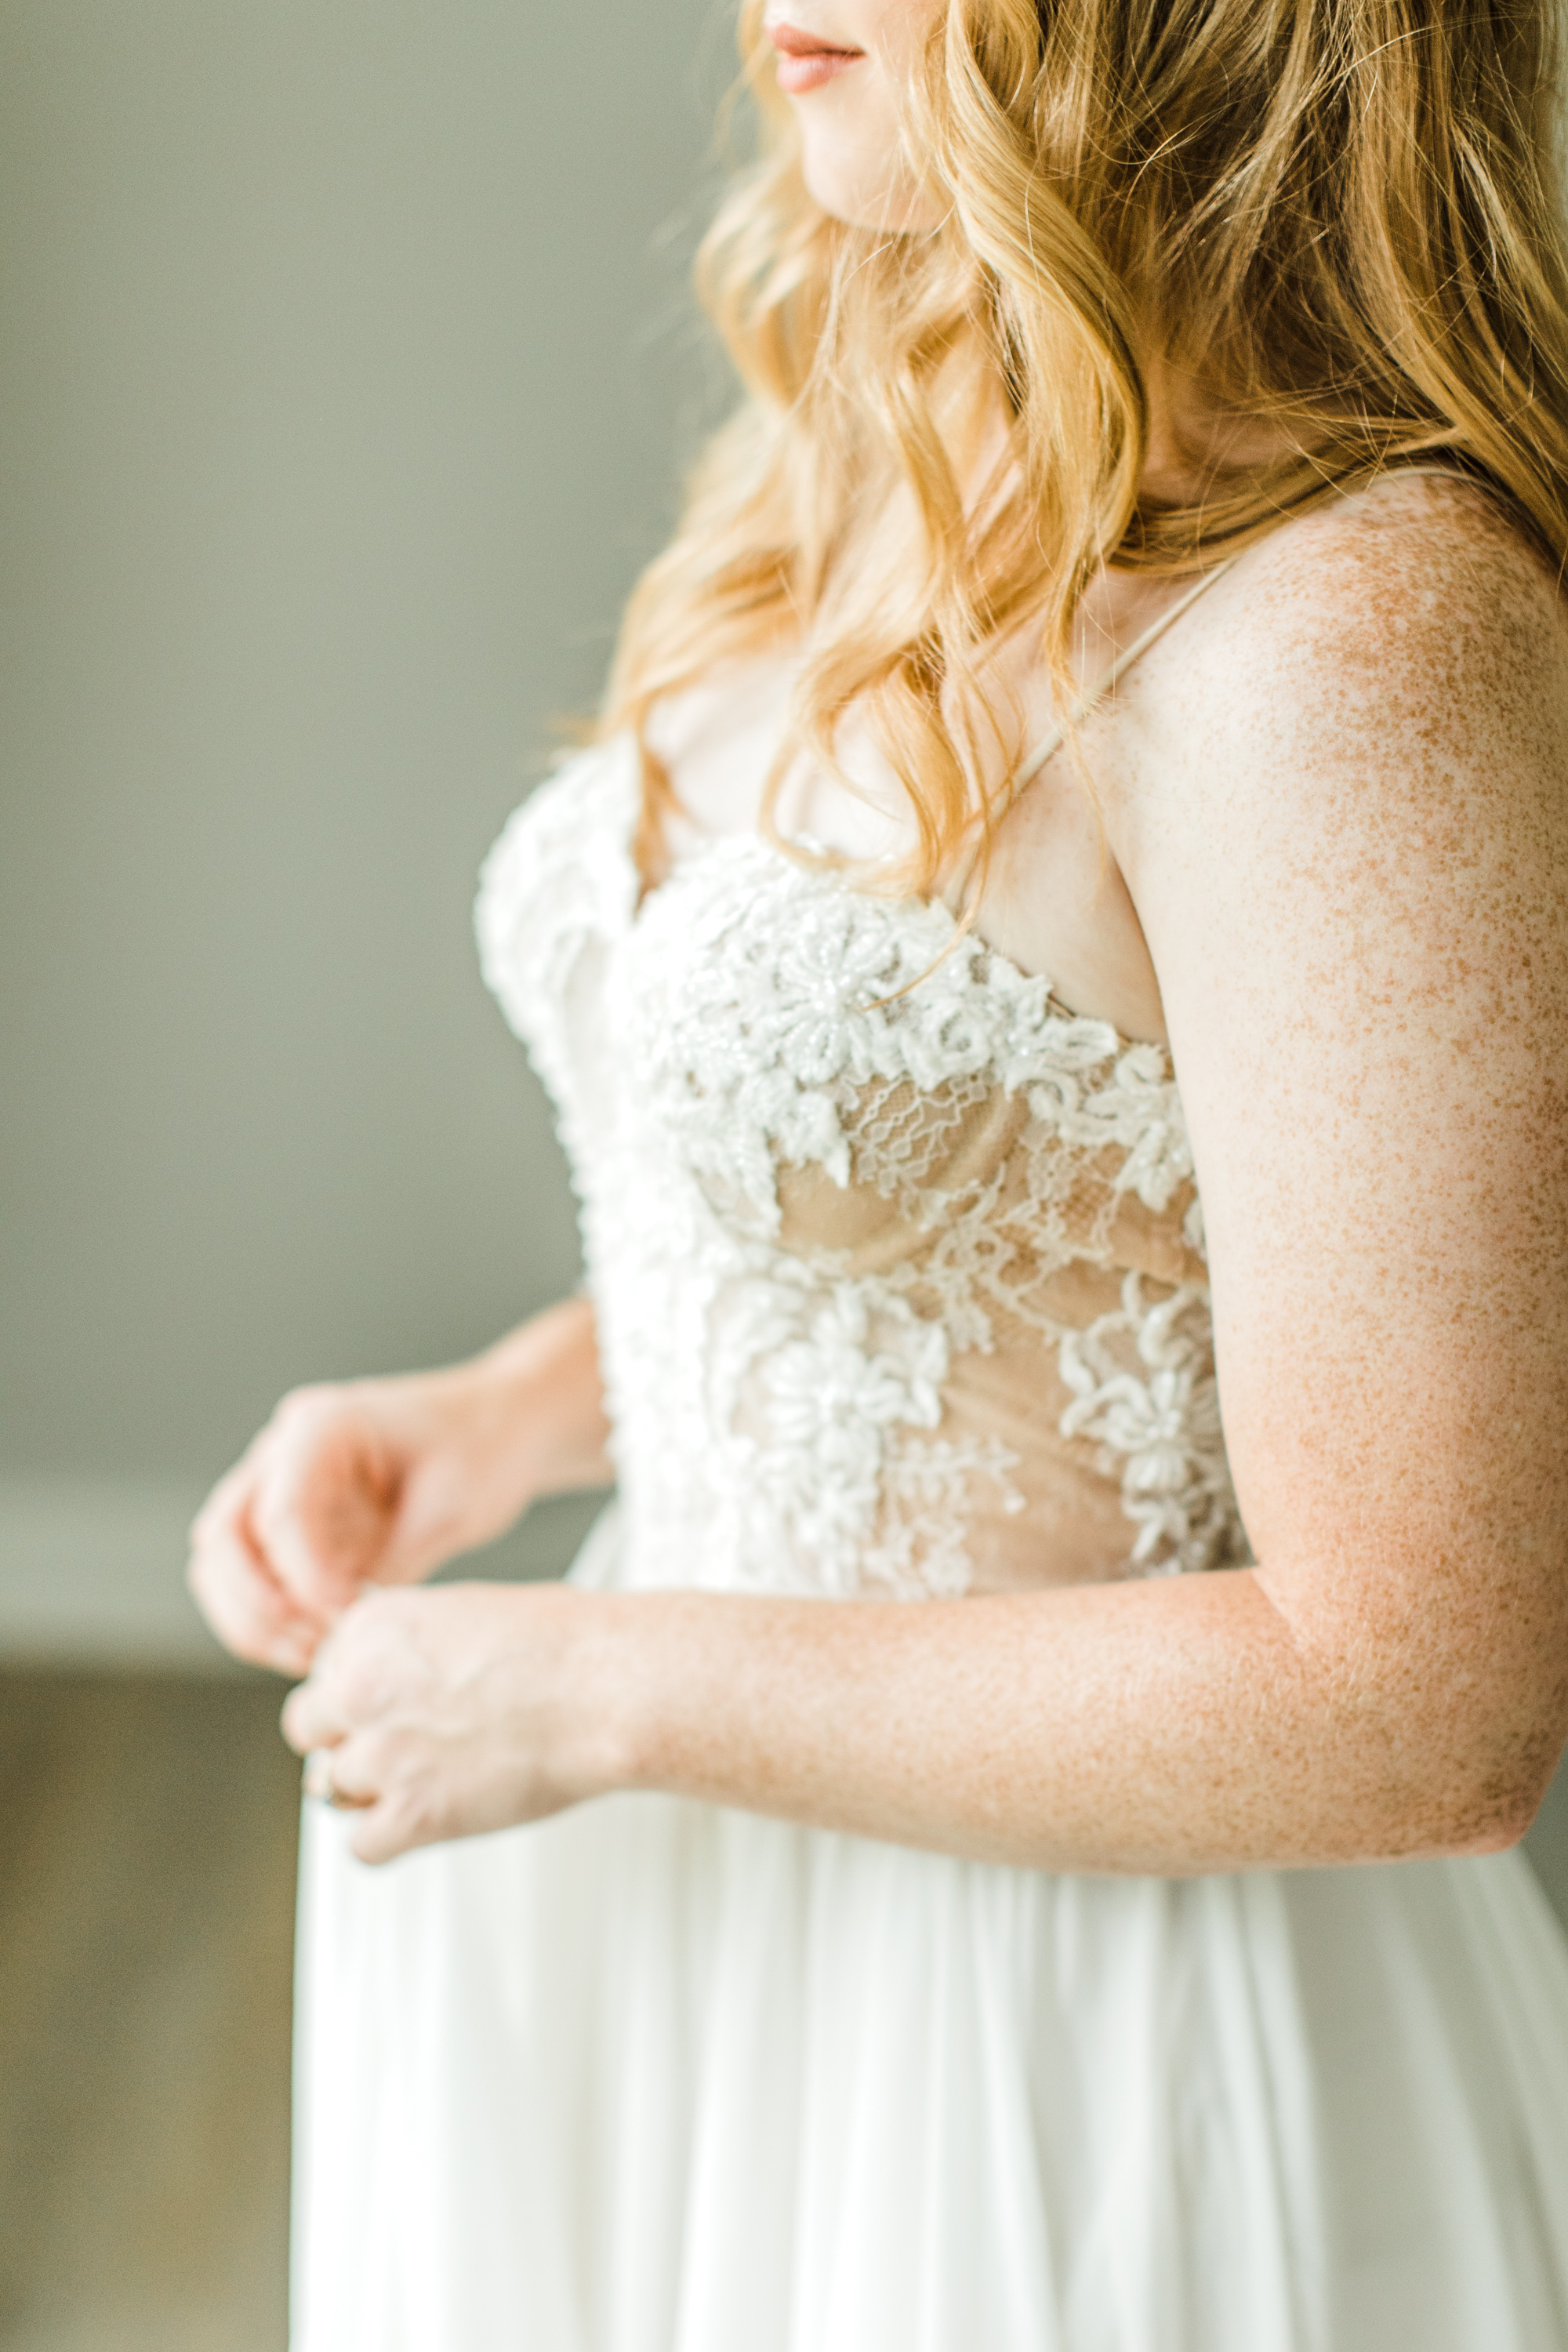 Dress from  LVD Bridal , photography by  Sarah Sidwell Photography ,   styling by jennifer of {feather + oak}.